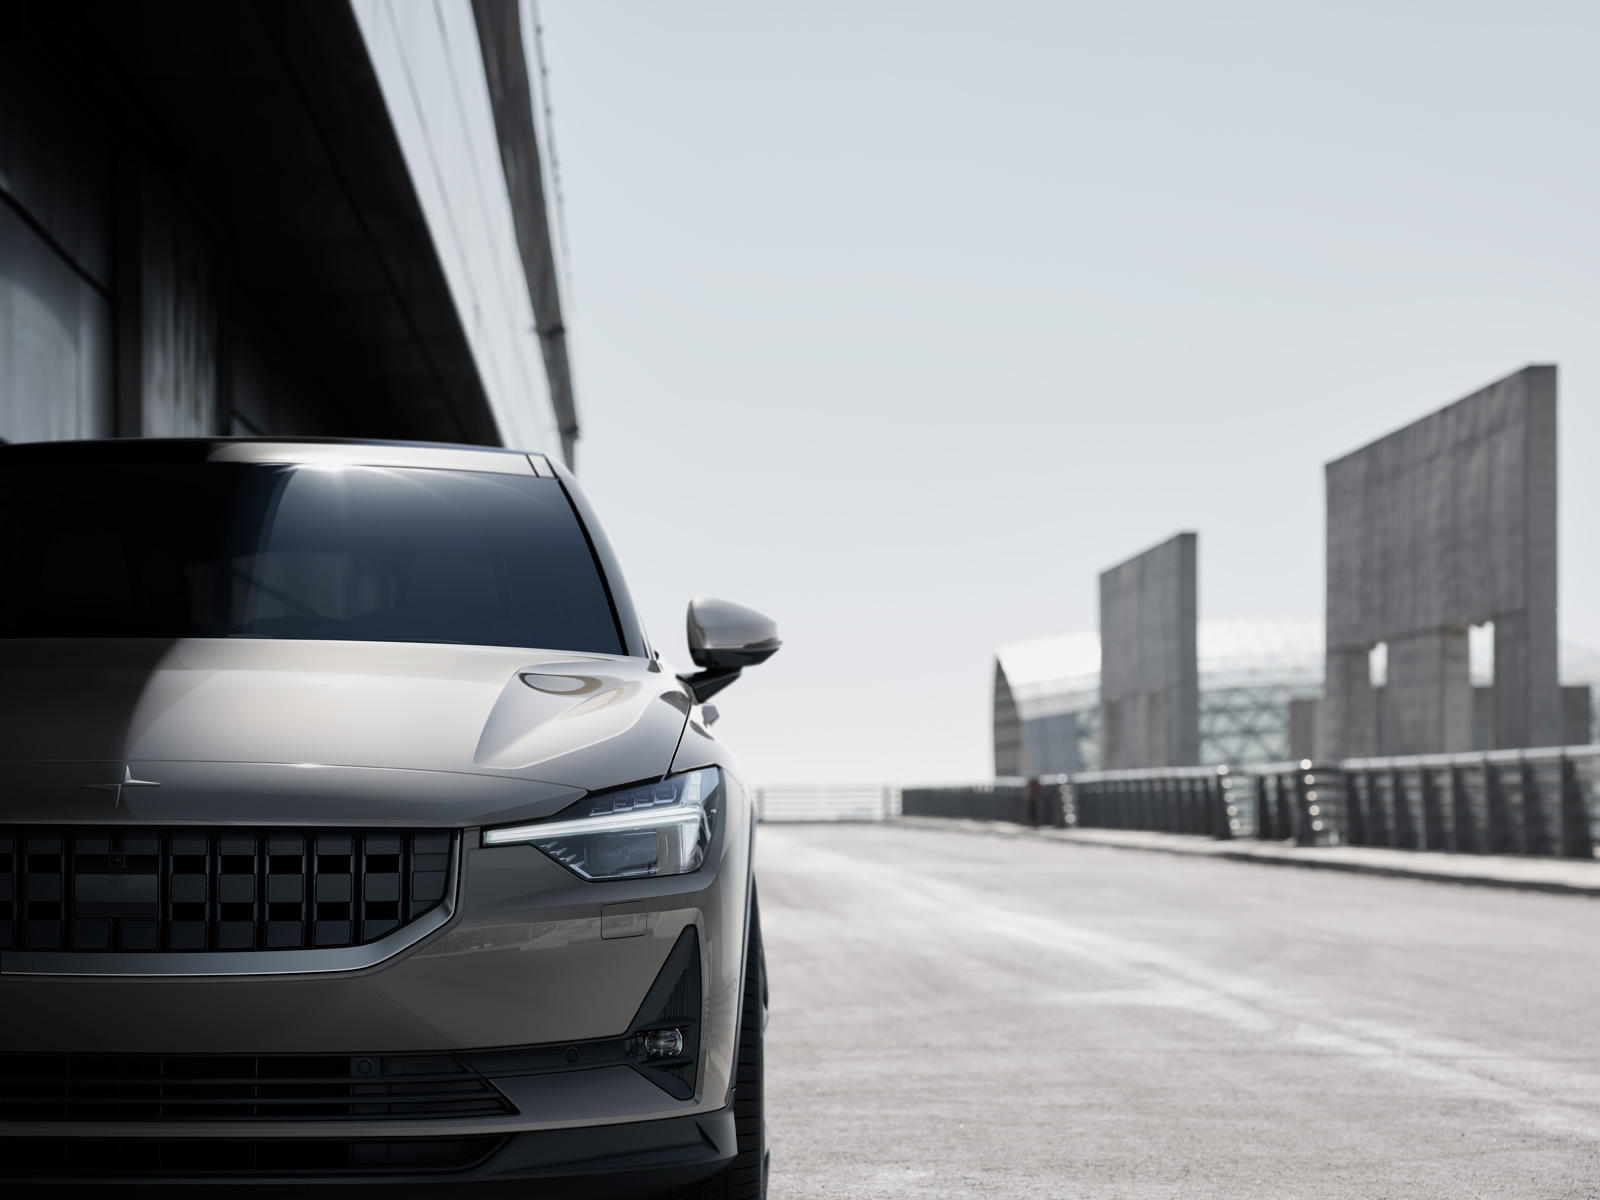 hight resolution of when we have the full list of official polestar 2 specifications we will add them duly meanwhile you can check out the specifications of model 3 and